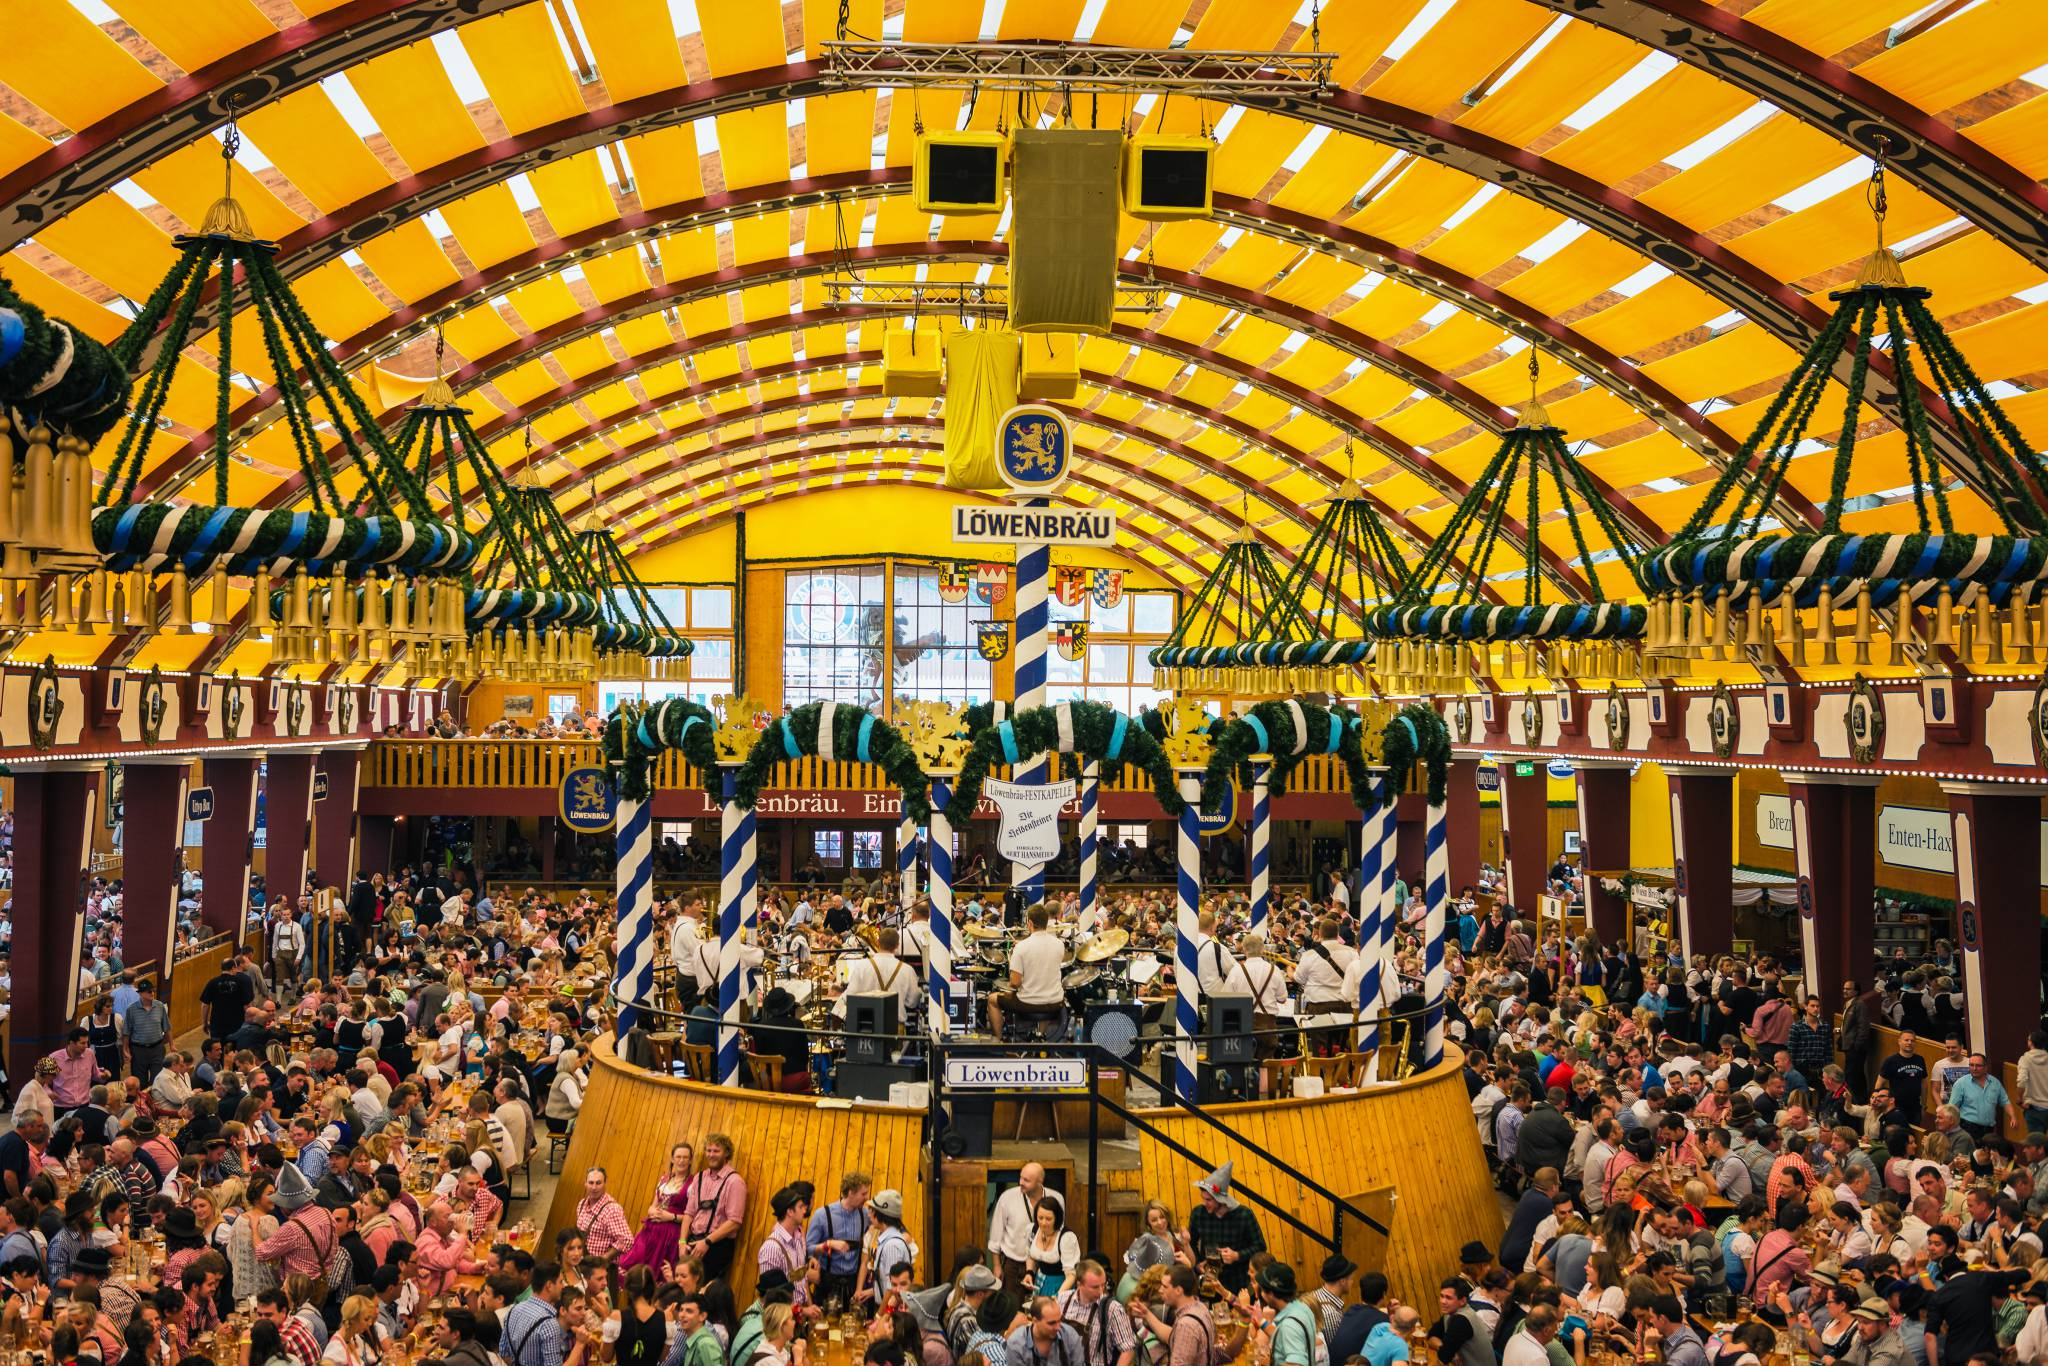 Oktoberfest, the most impressive beer fest around the world